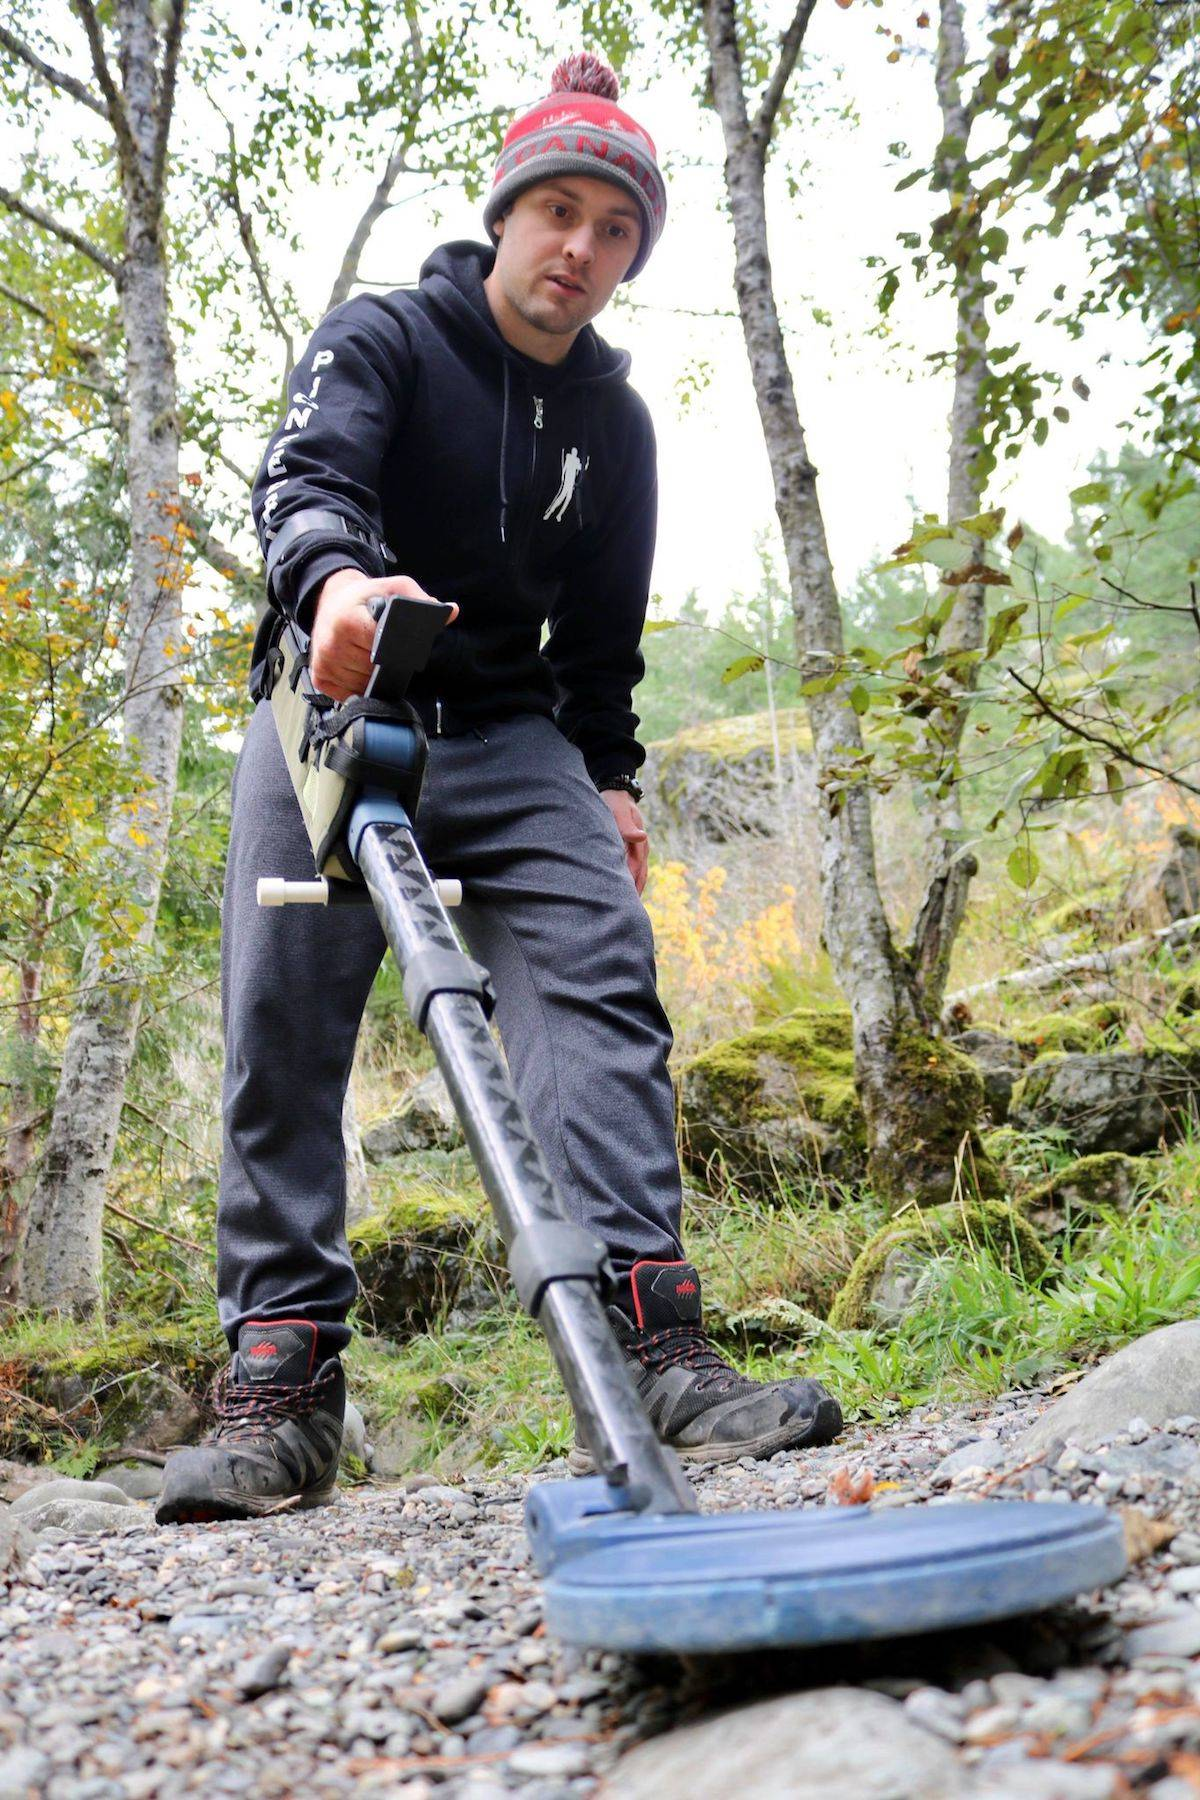 Sooke's Paul Larouche, aka PioneerPauly on YouTube, uses a metal detector in hopes to find gold flakes along his claim of the Sooke River. (Aaron Guillen/News Staff)